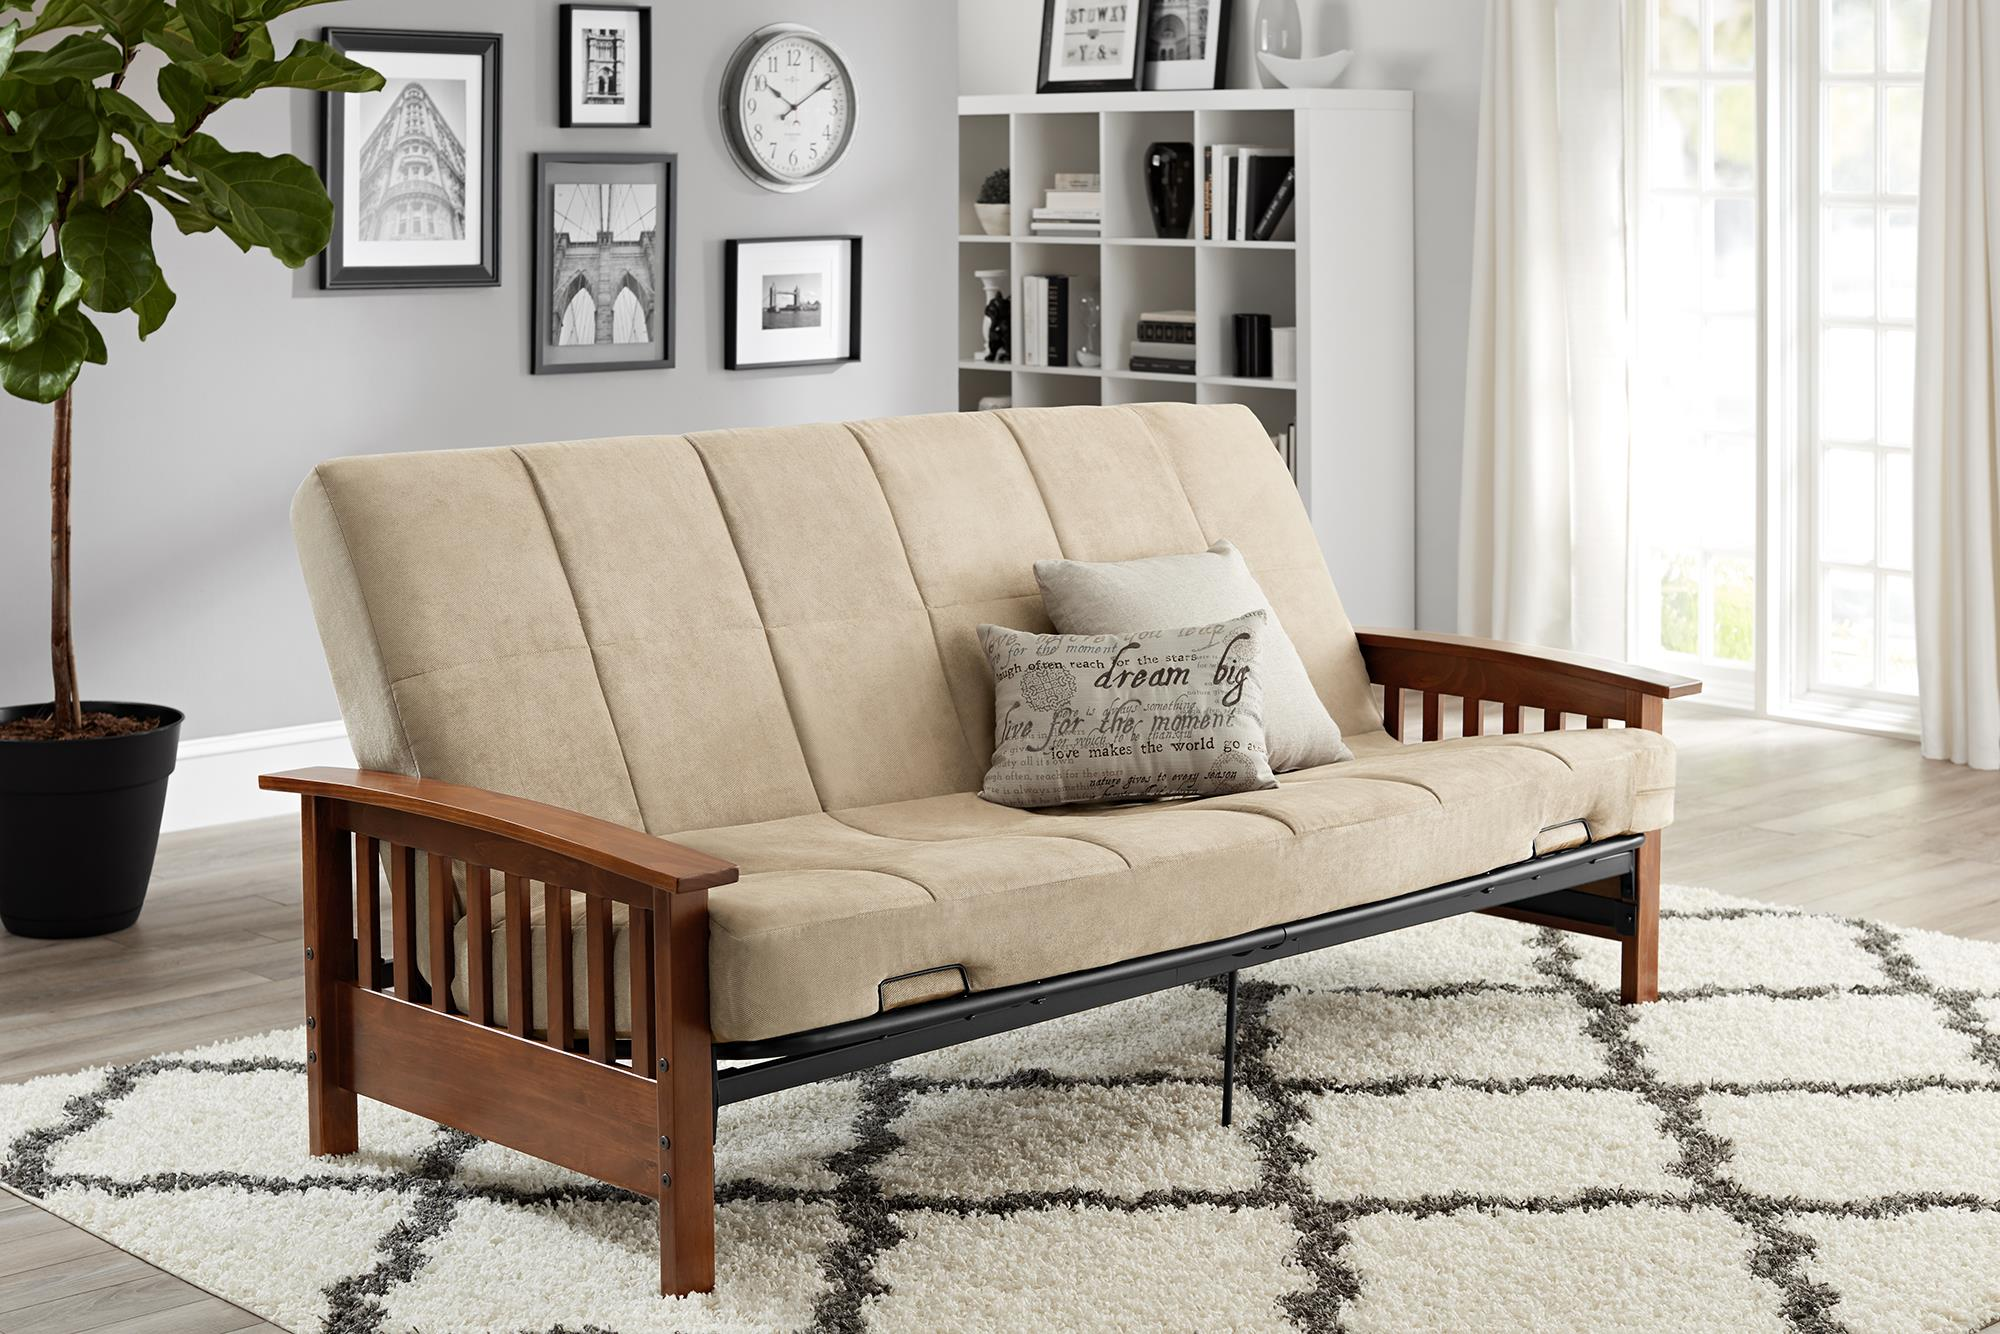 Peachy Details About Convertible Small Single Sleeper Mission Wood Arm Futon Full Couch Furniture Tan Machost Co Dining Chair Design Ideas Machostcouk